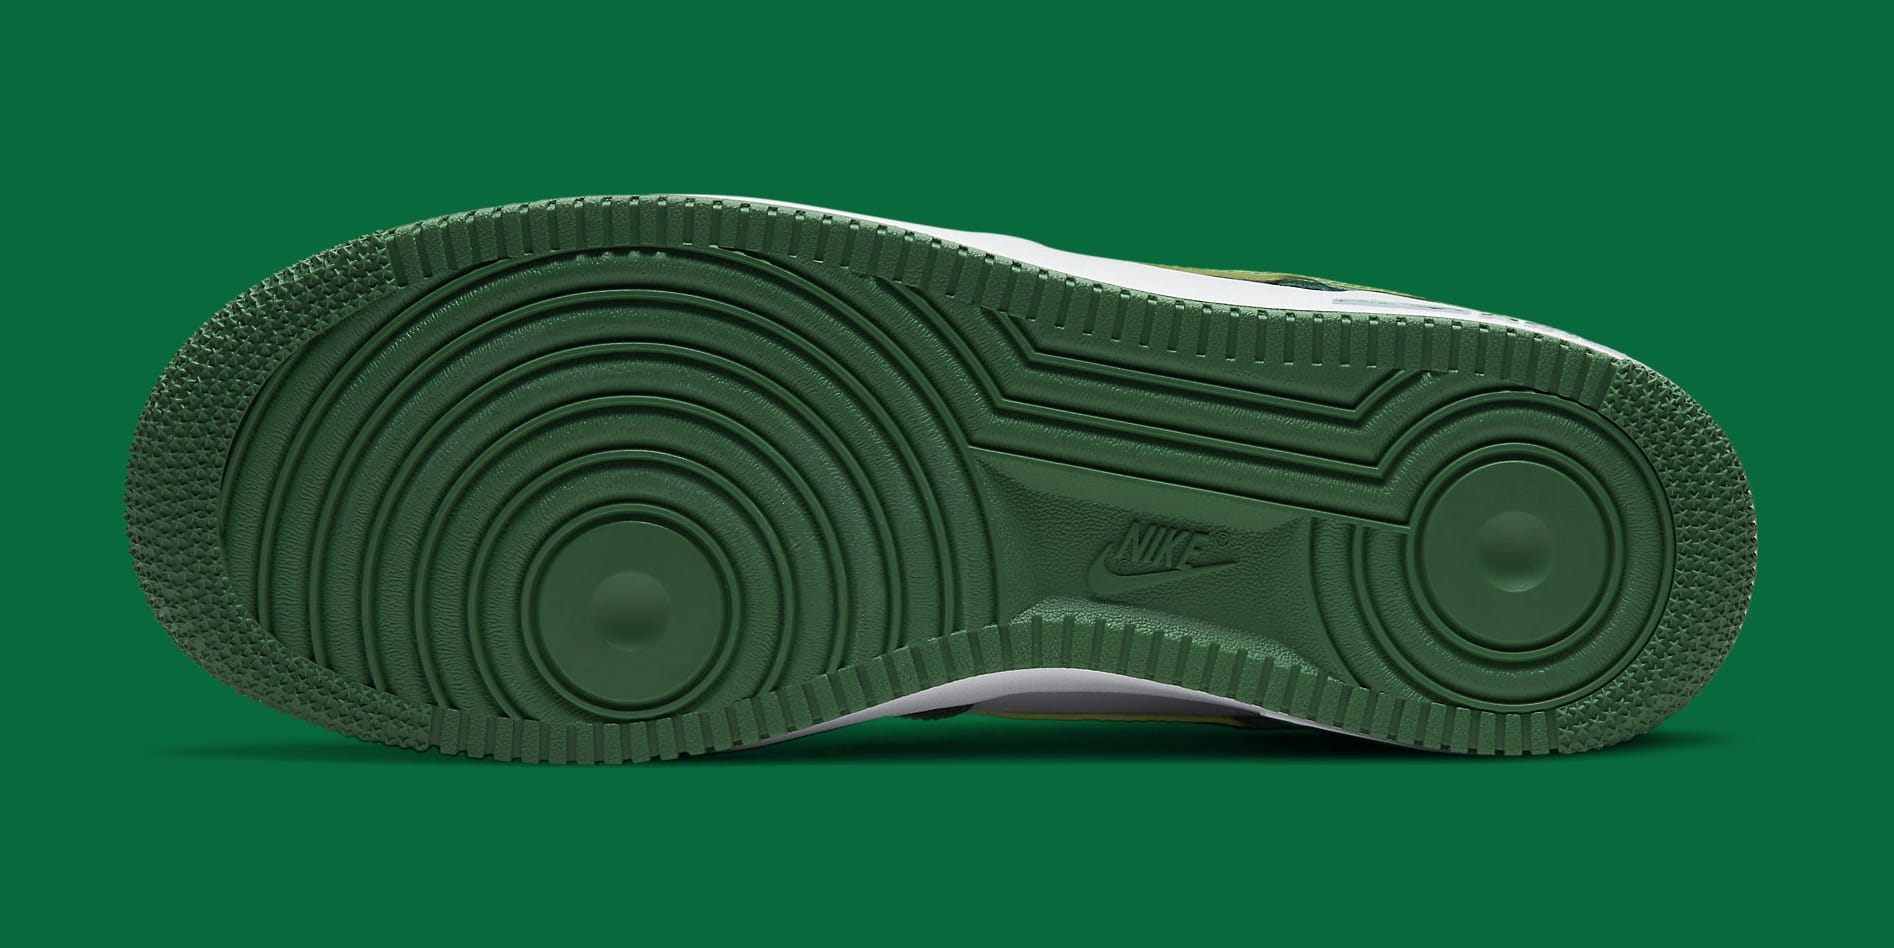 Nike Air Force 1 Low 'St. Patrick's Day' DD8458-300 Outsole